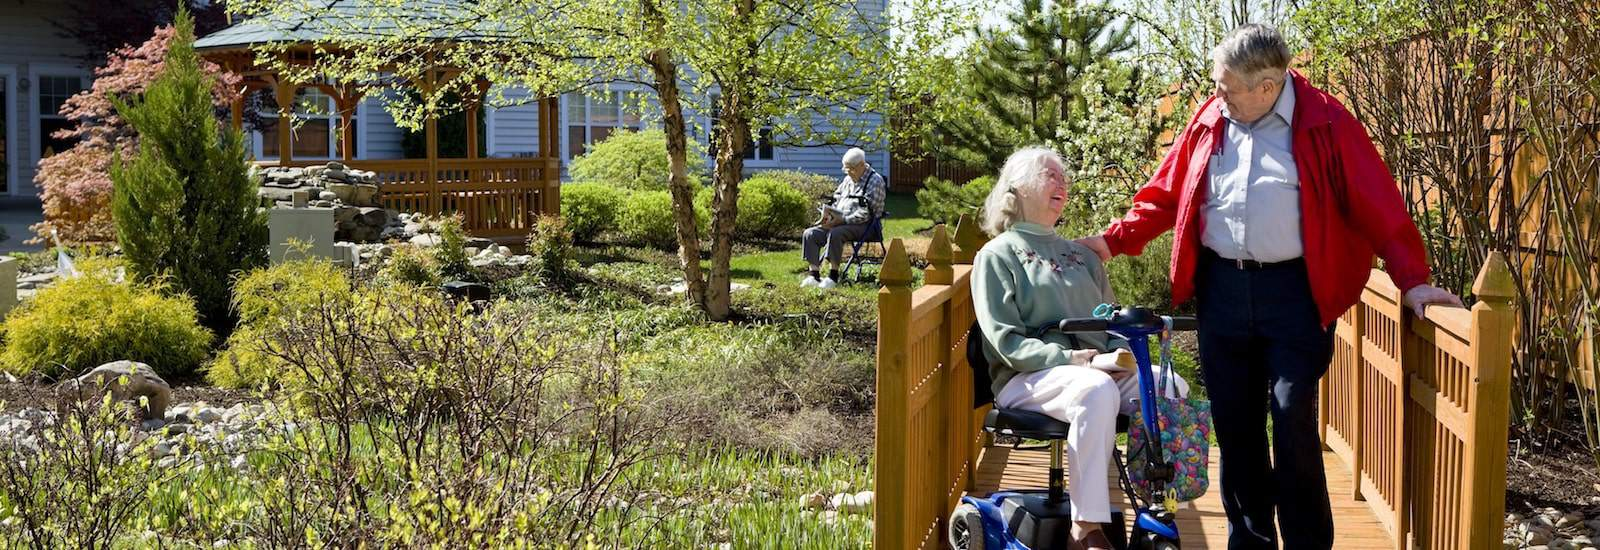 senior with mobile aid in assisted living